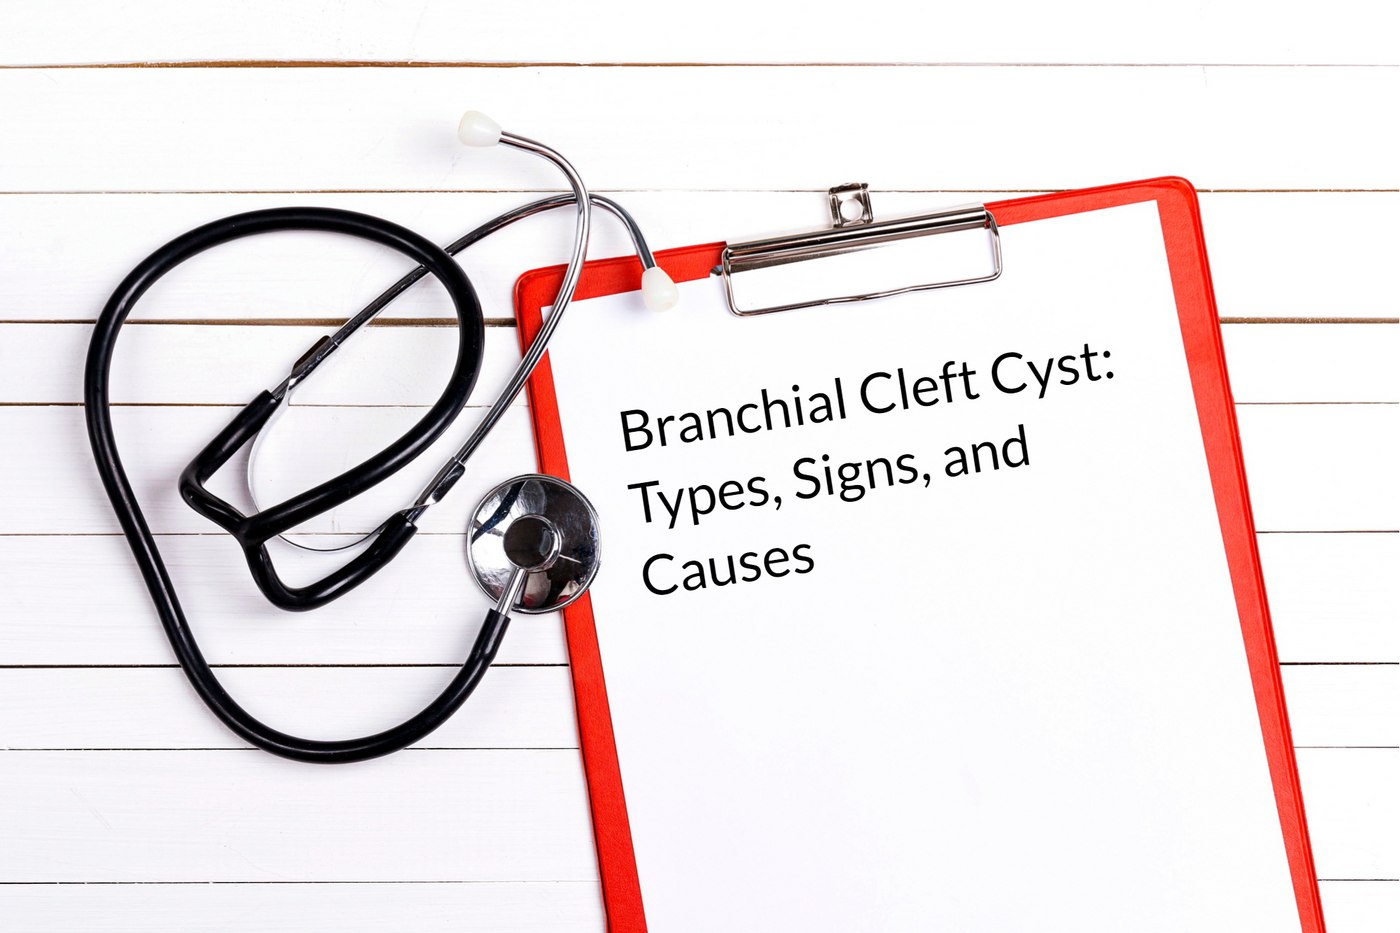 Branchial Cleft Cyst Signs Symptoms Houston ENT